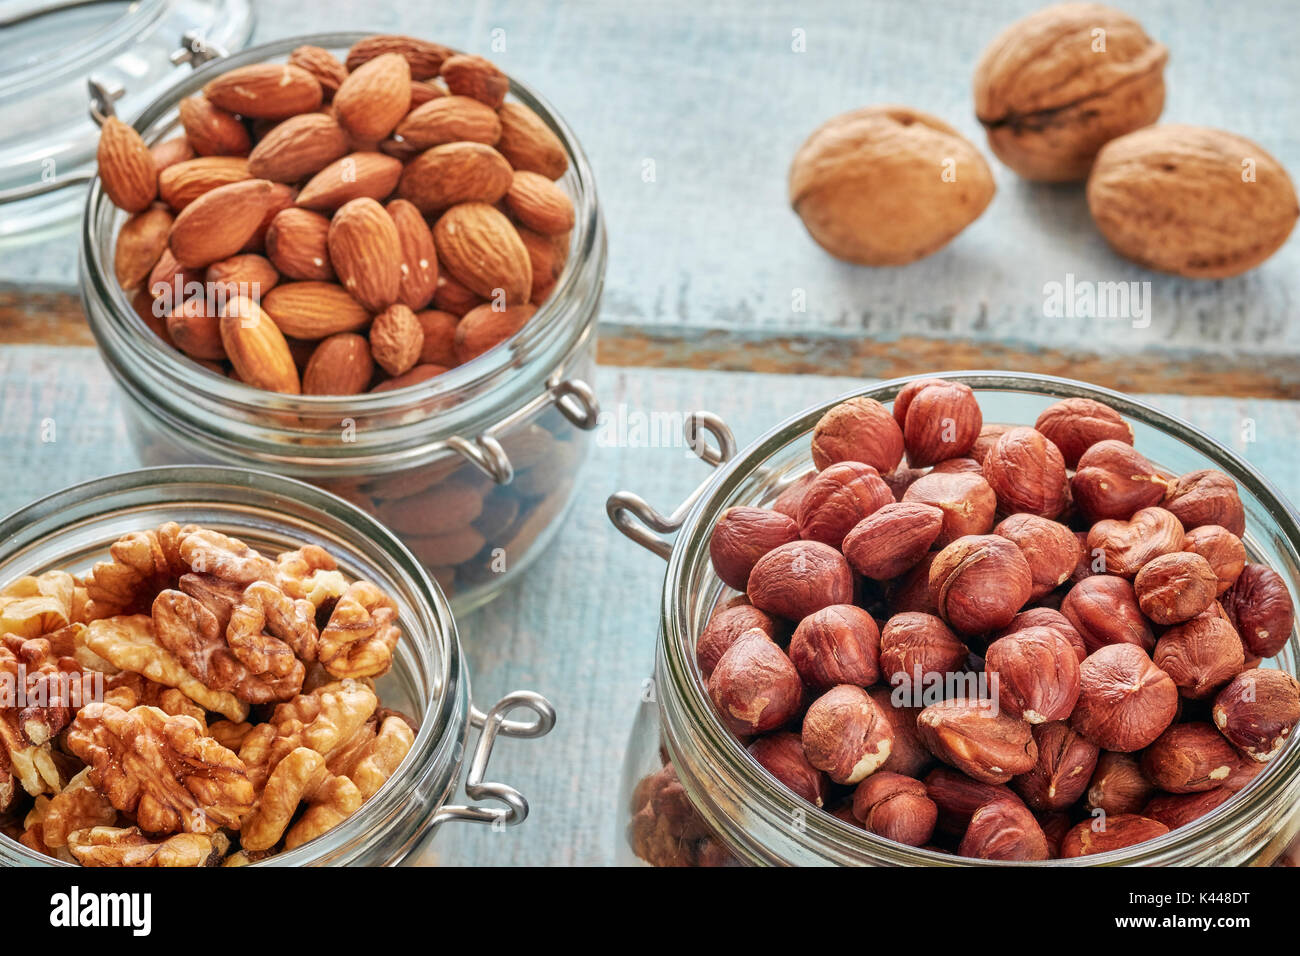 Walnuts, hazelnuts and almonds in jars on a rustic wooden background, shallow depth of field. - Stock Image